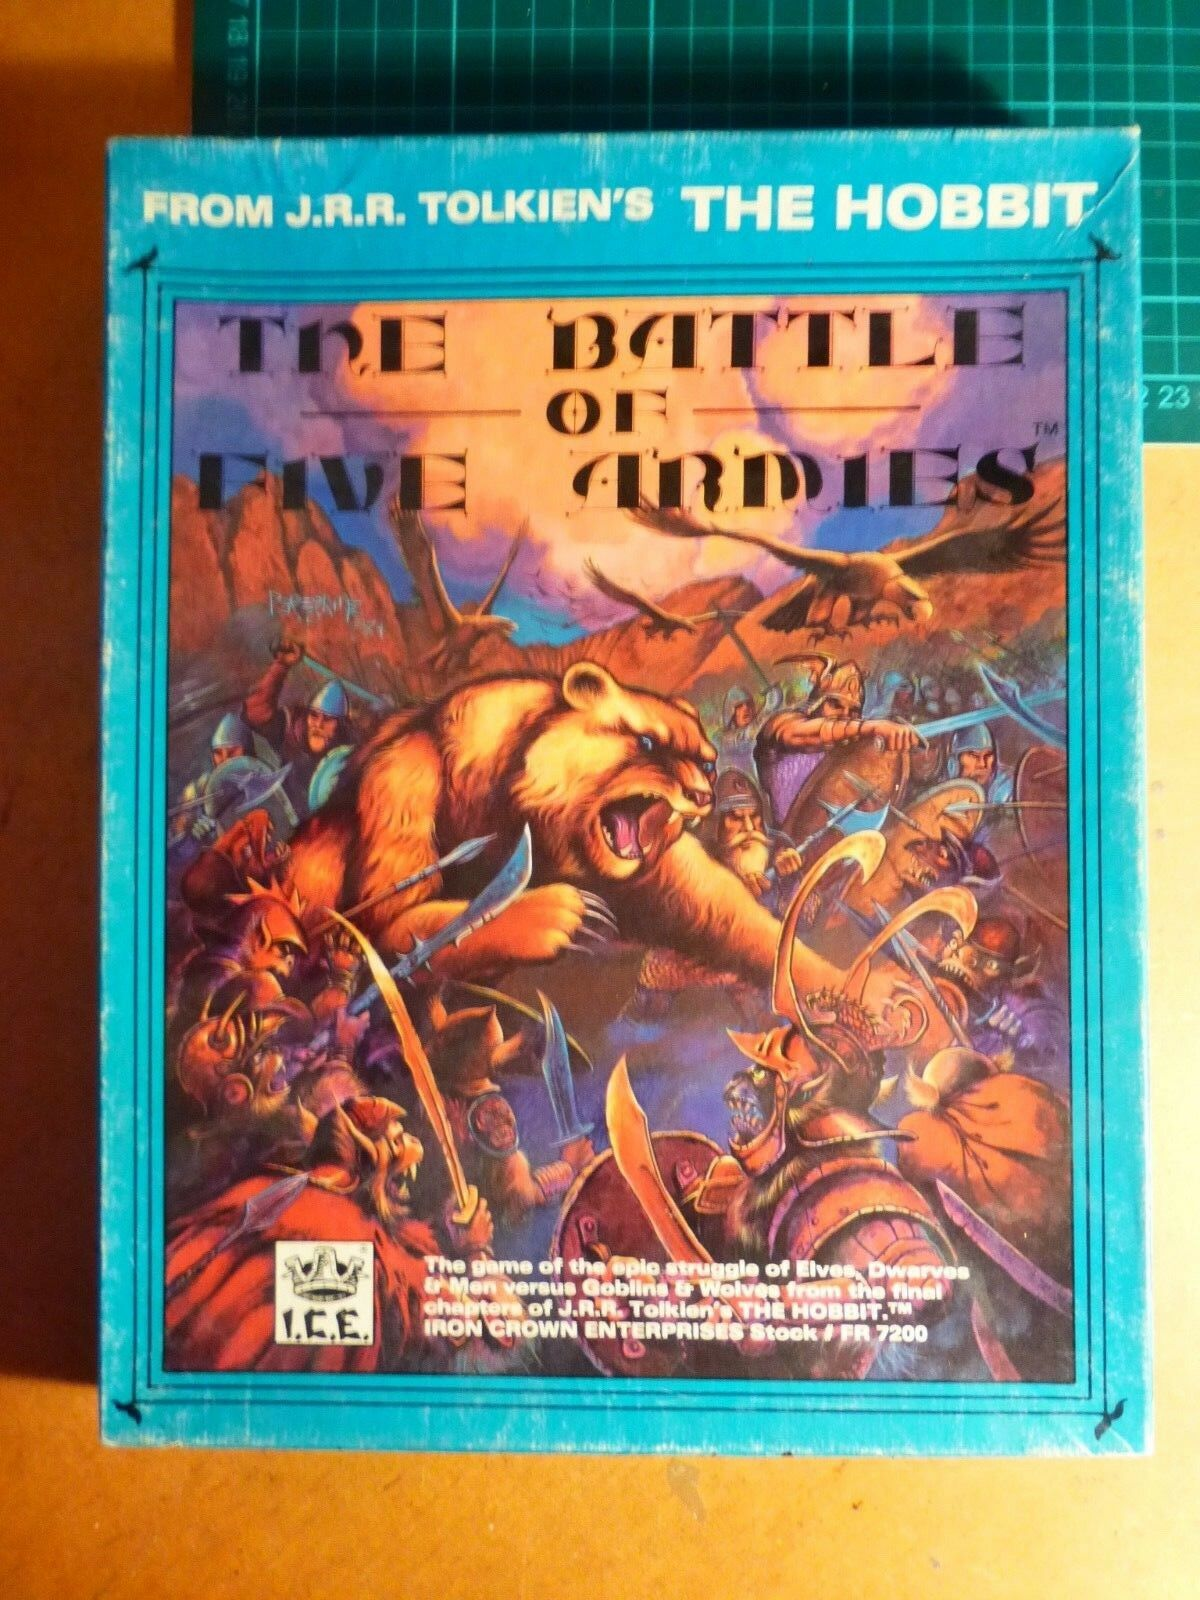 The Battle of Five Armies by I.C.E. (COMPLETE) Middle Earth  Hobbit LOTR Tolkien